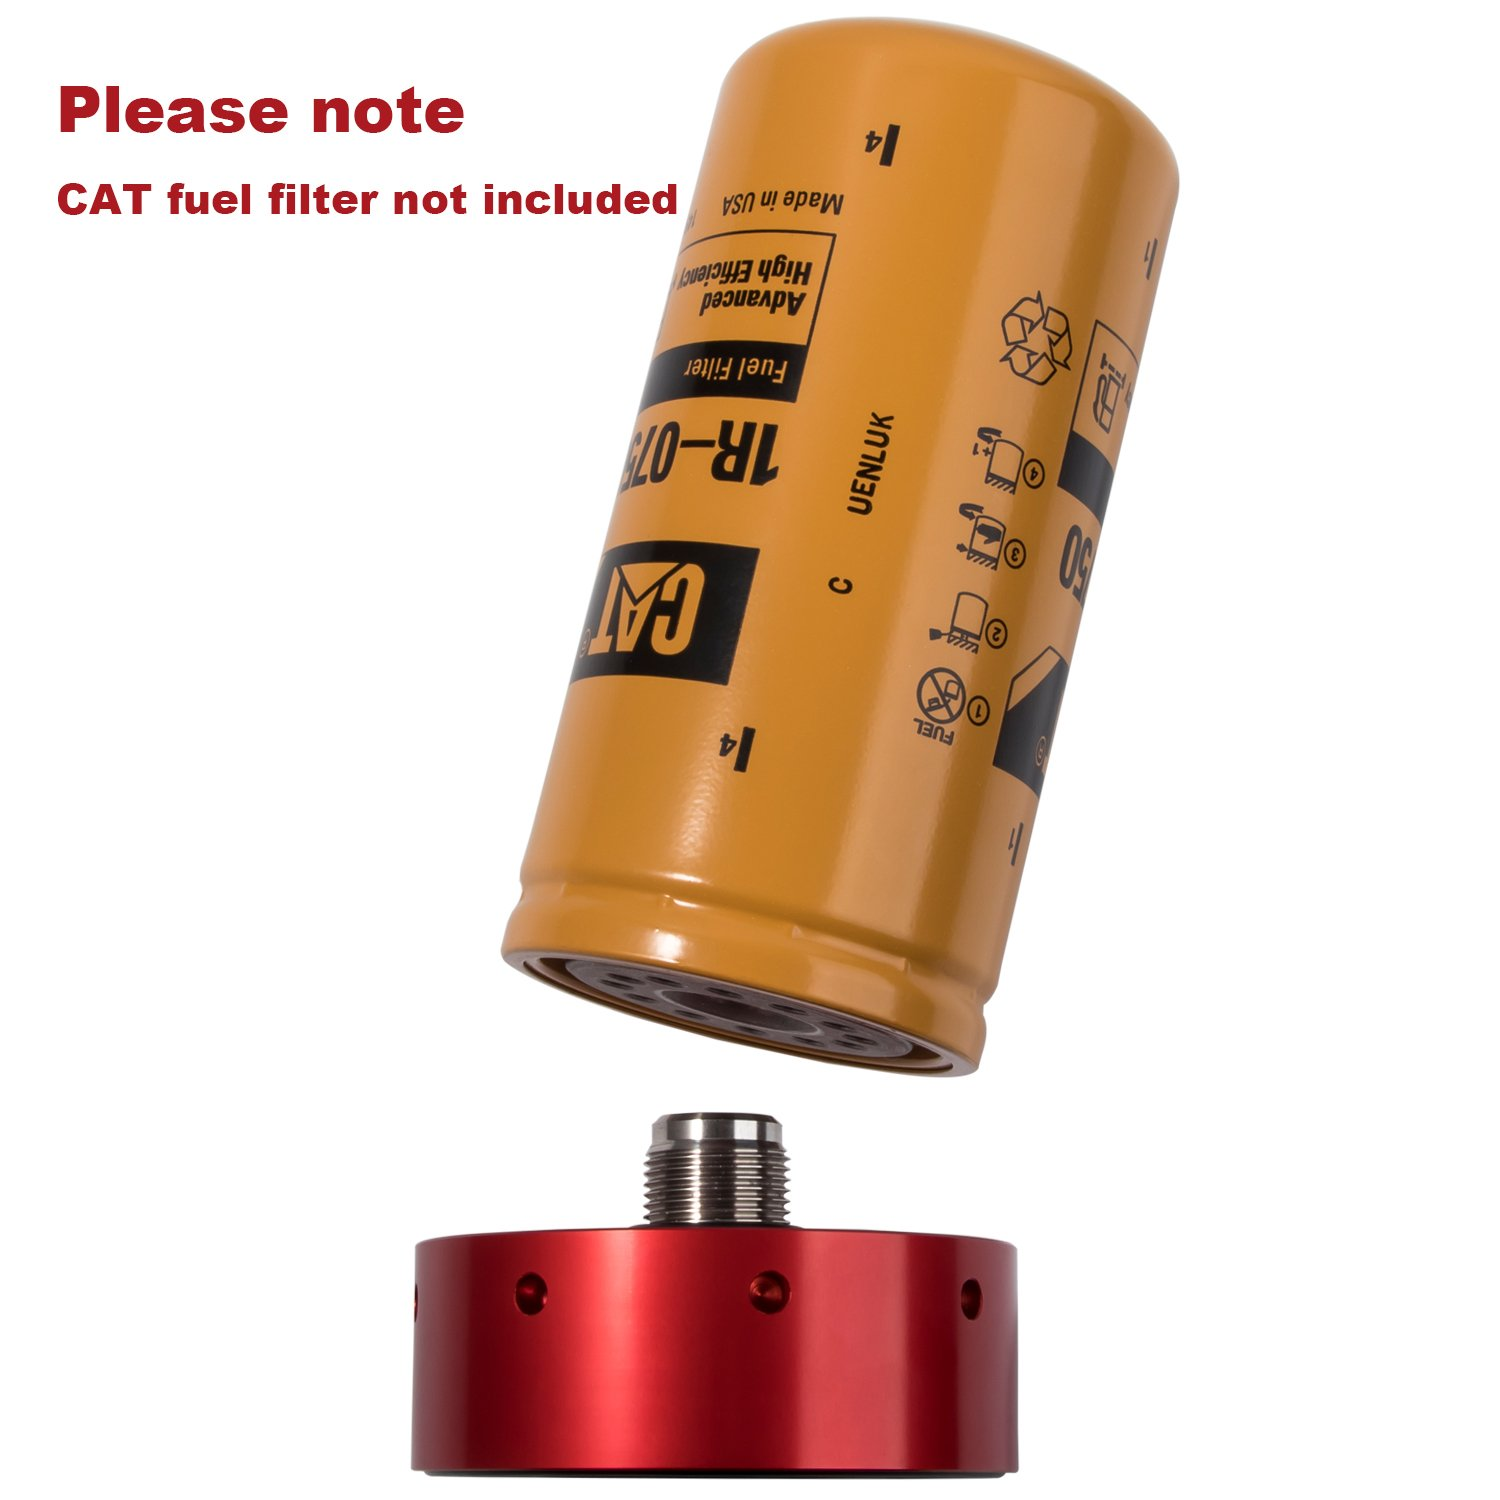 Danti Cat Fuel Filter Adapter For Chevy Gmc Duramax 2005 Kia Sportage Diesel 2001 2016 Automotive